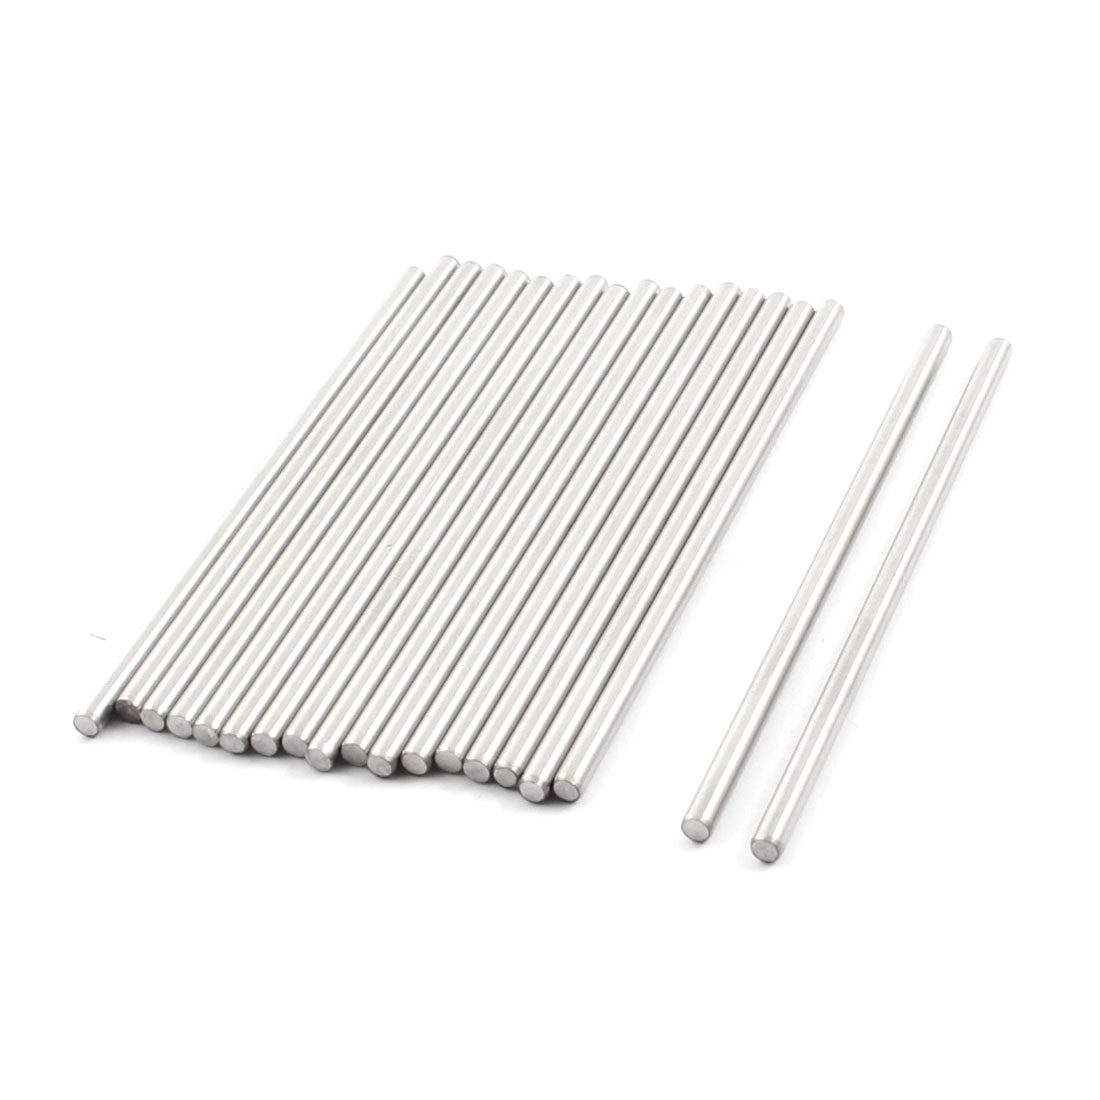 19pcs 90mm x 3mm Stainless Steel Round DIY Gear Axles Shaft Rod Silver Tone for RC Model Car